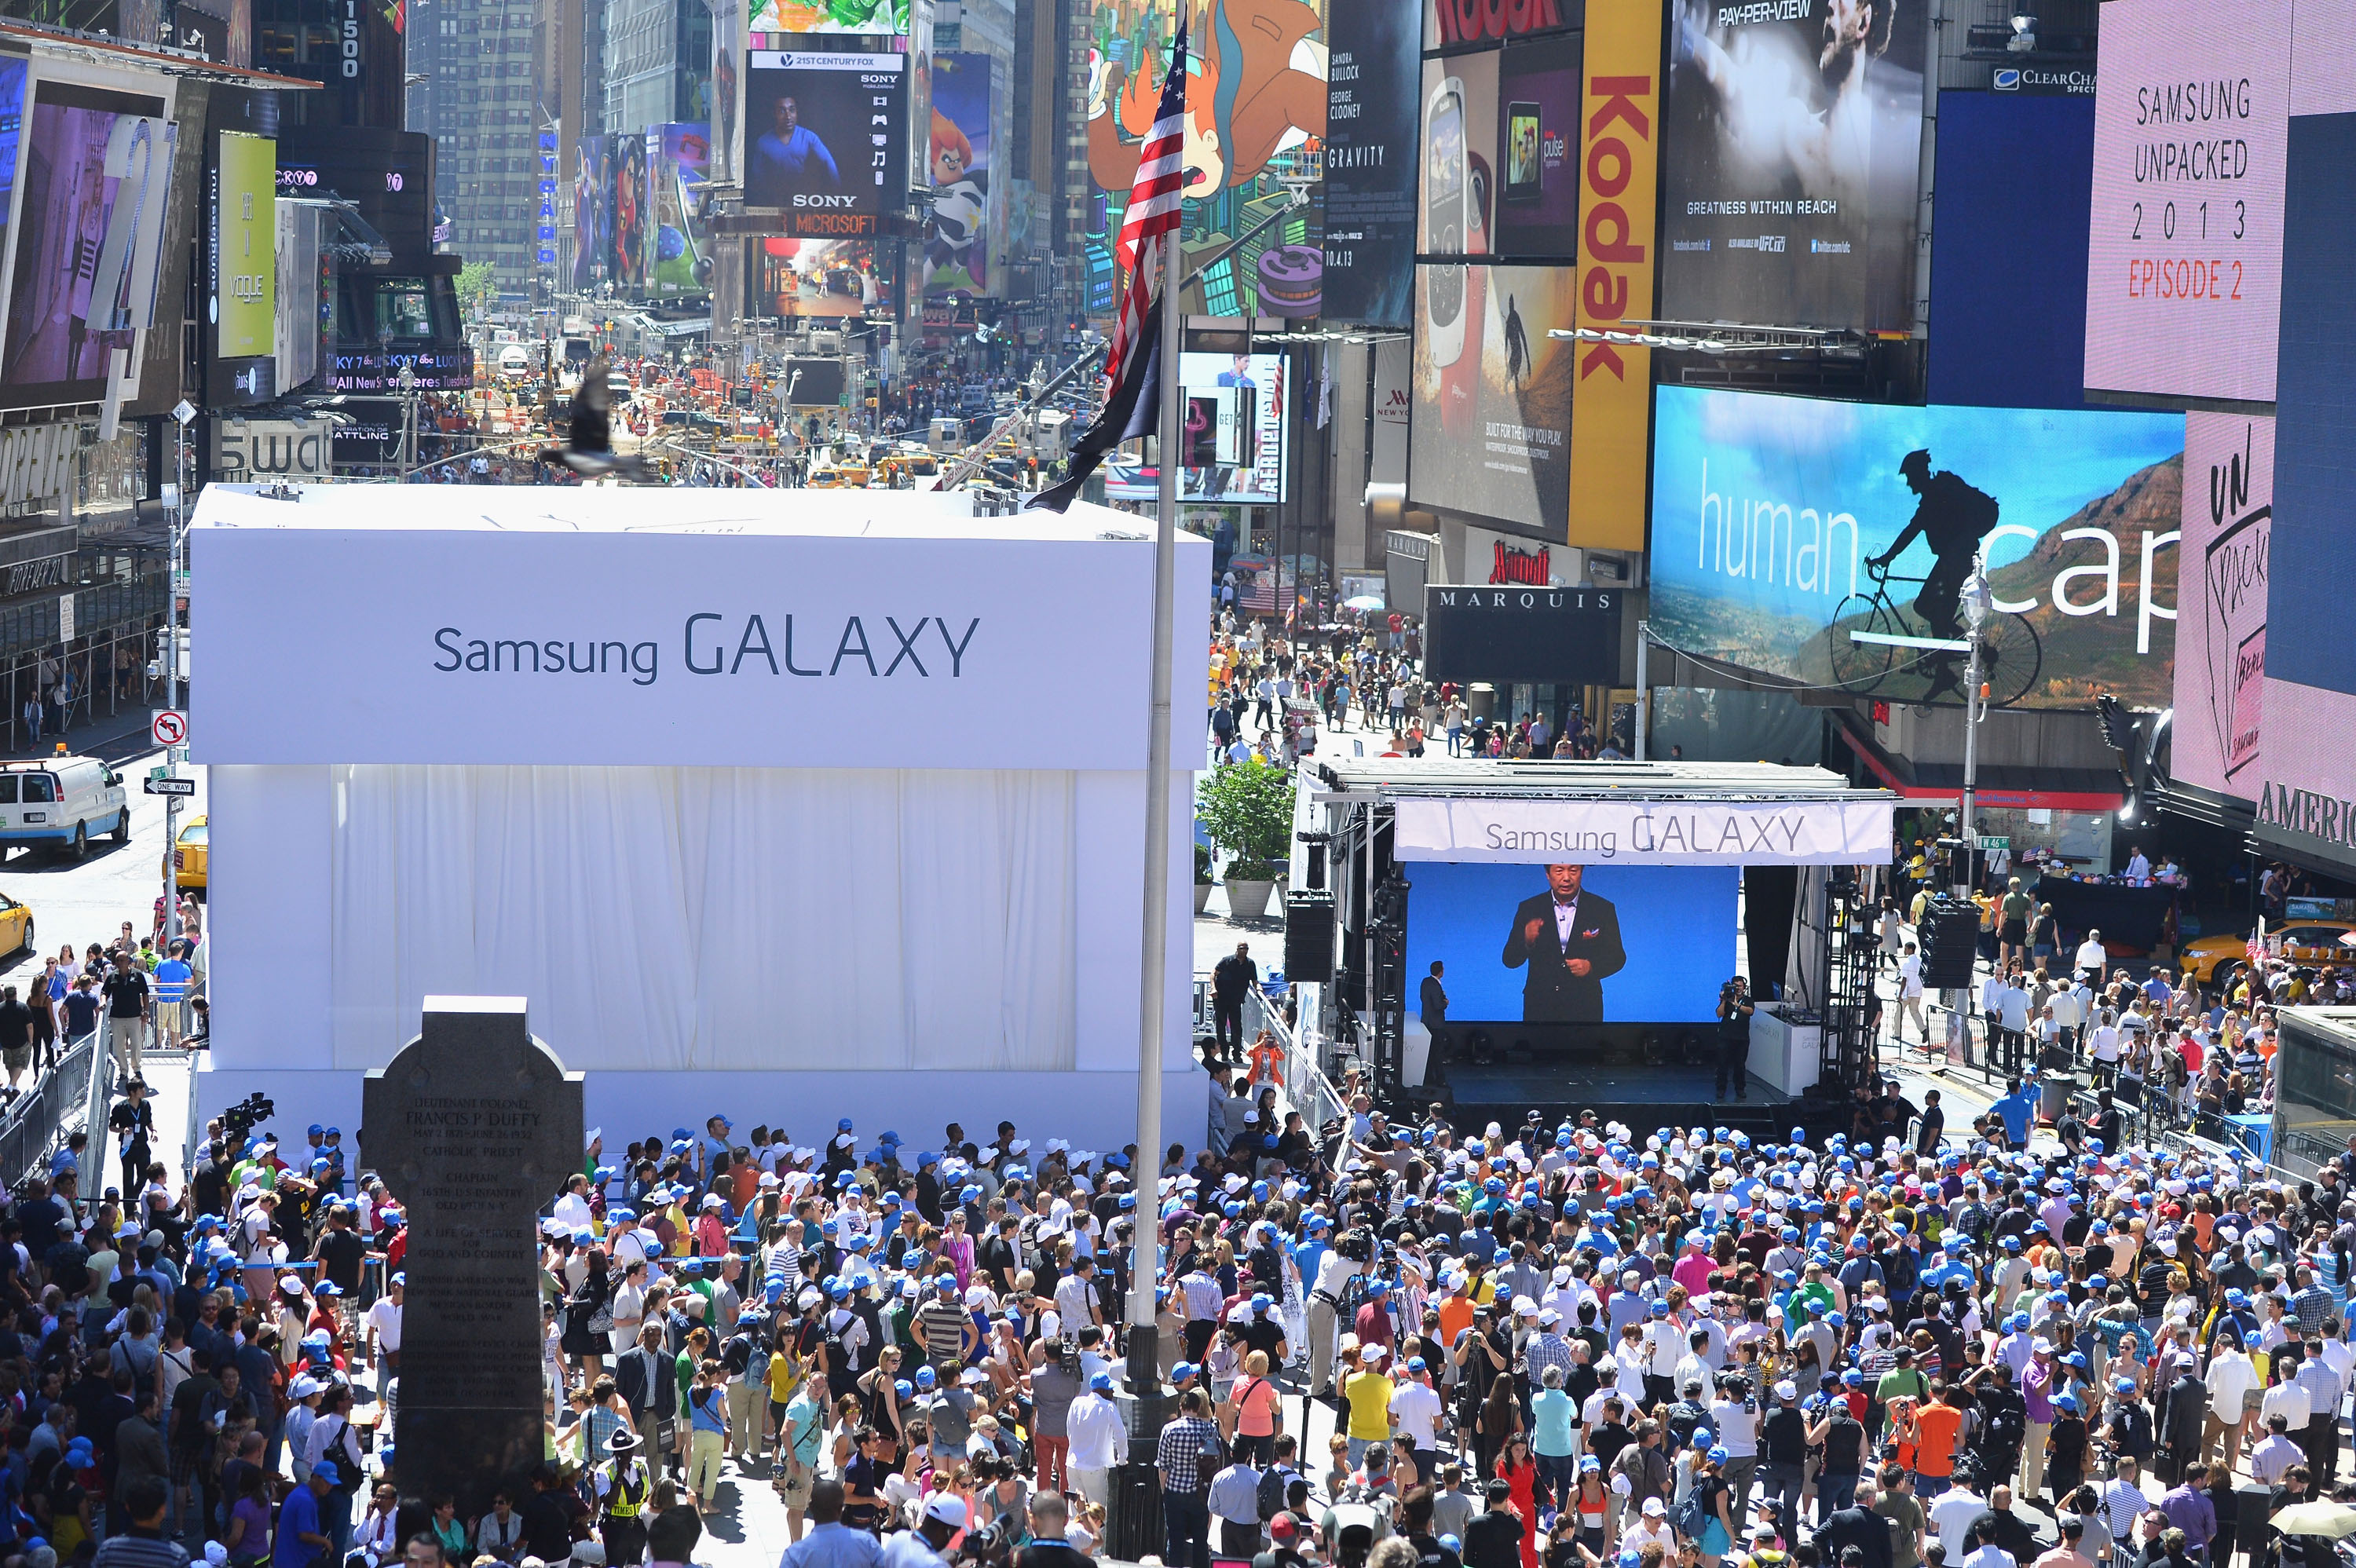 Samsung Galaxy Note III and Galaxy Gear Unpacked Event In NYC